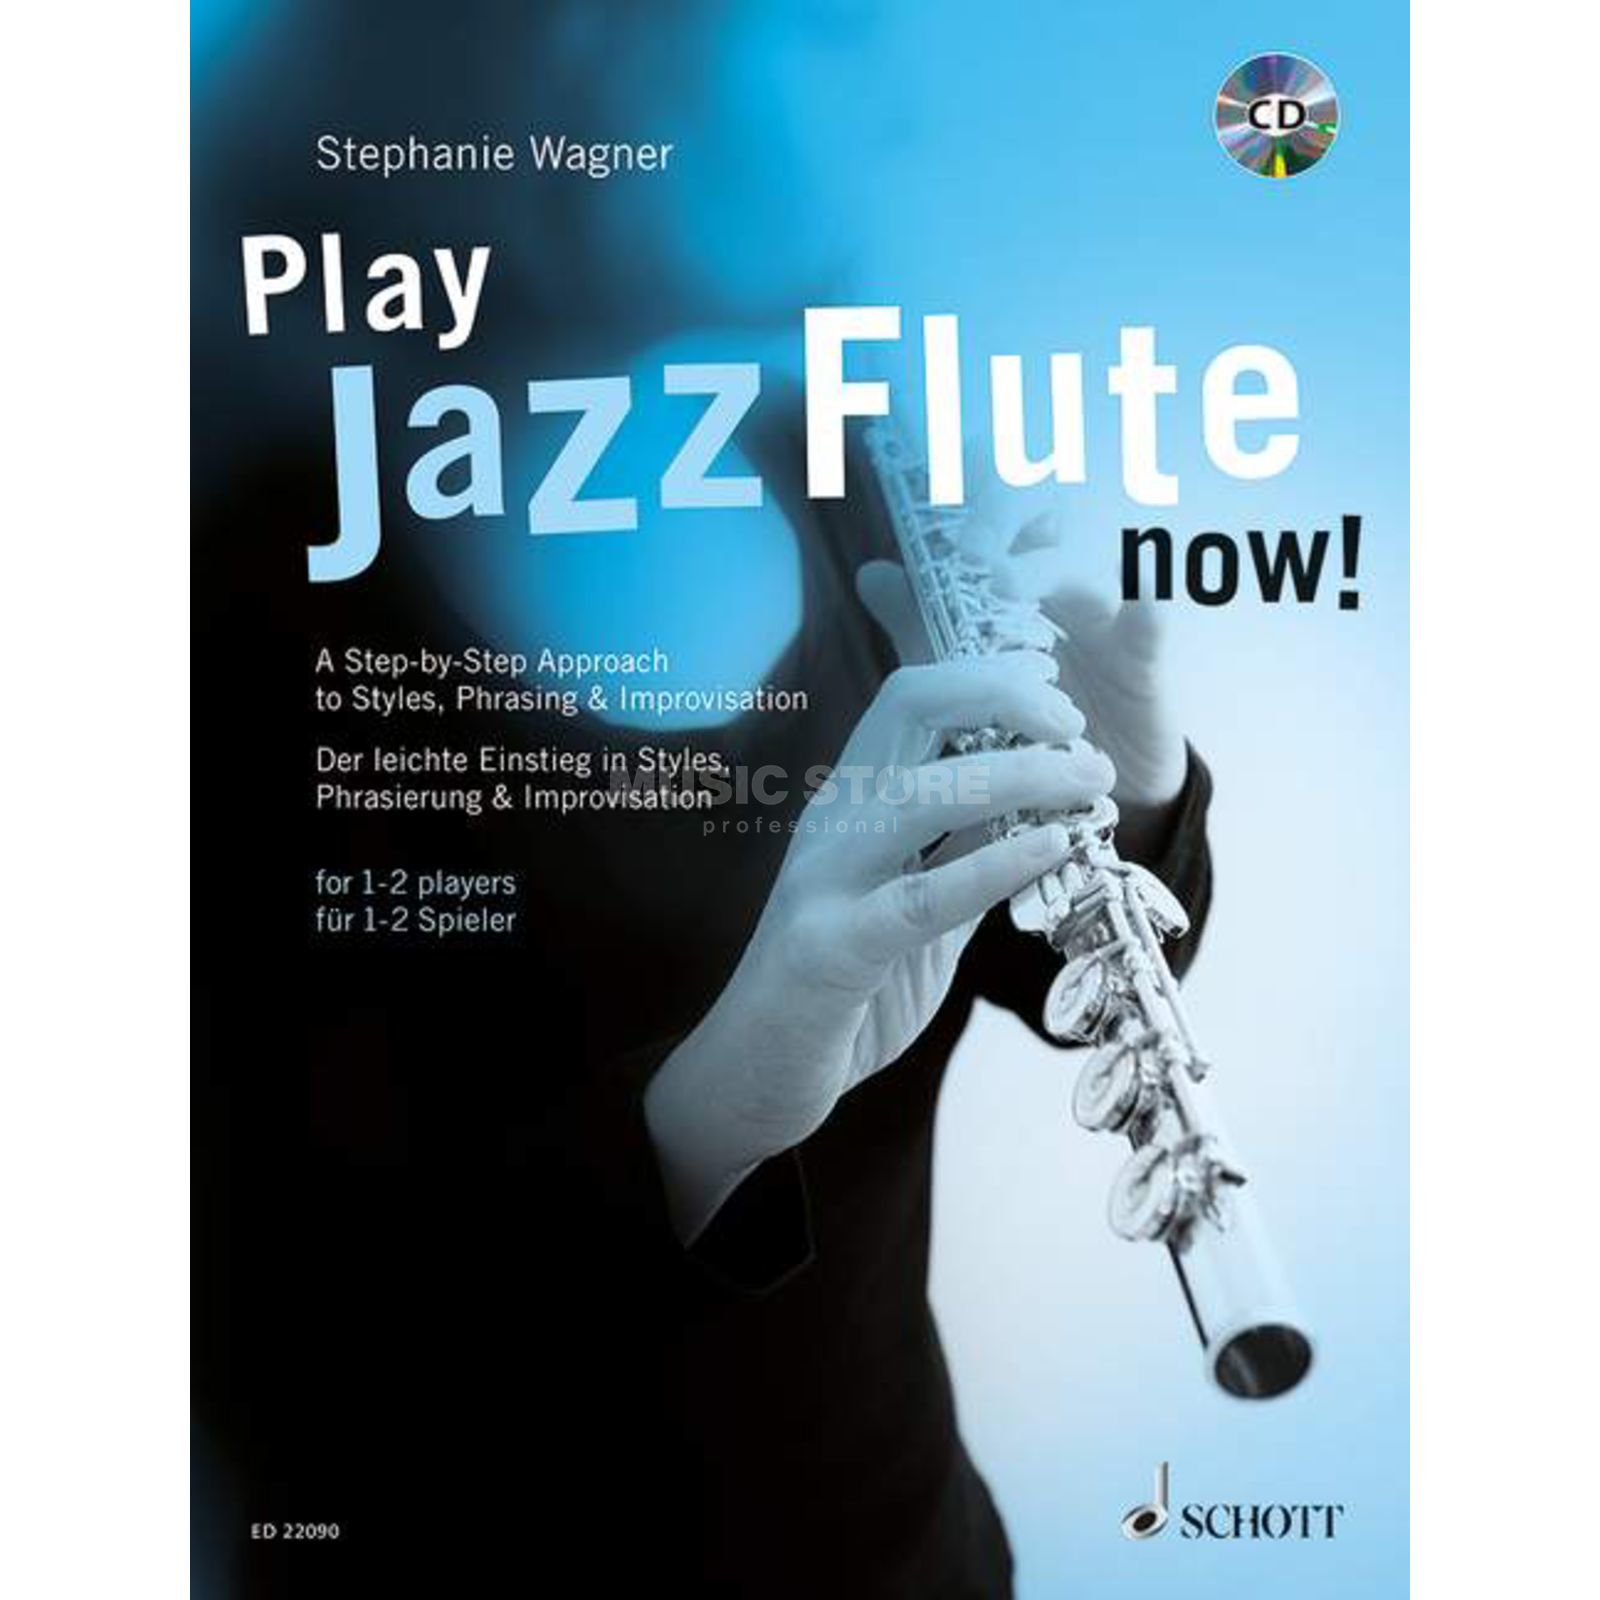 Schott-Verlag Play Jazz Flute - now! Stephanie Wagner Produktbillede